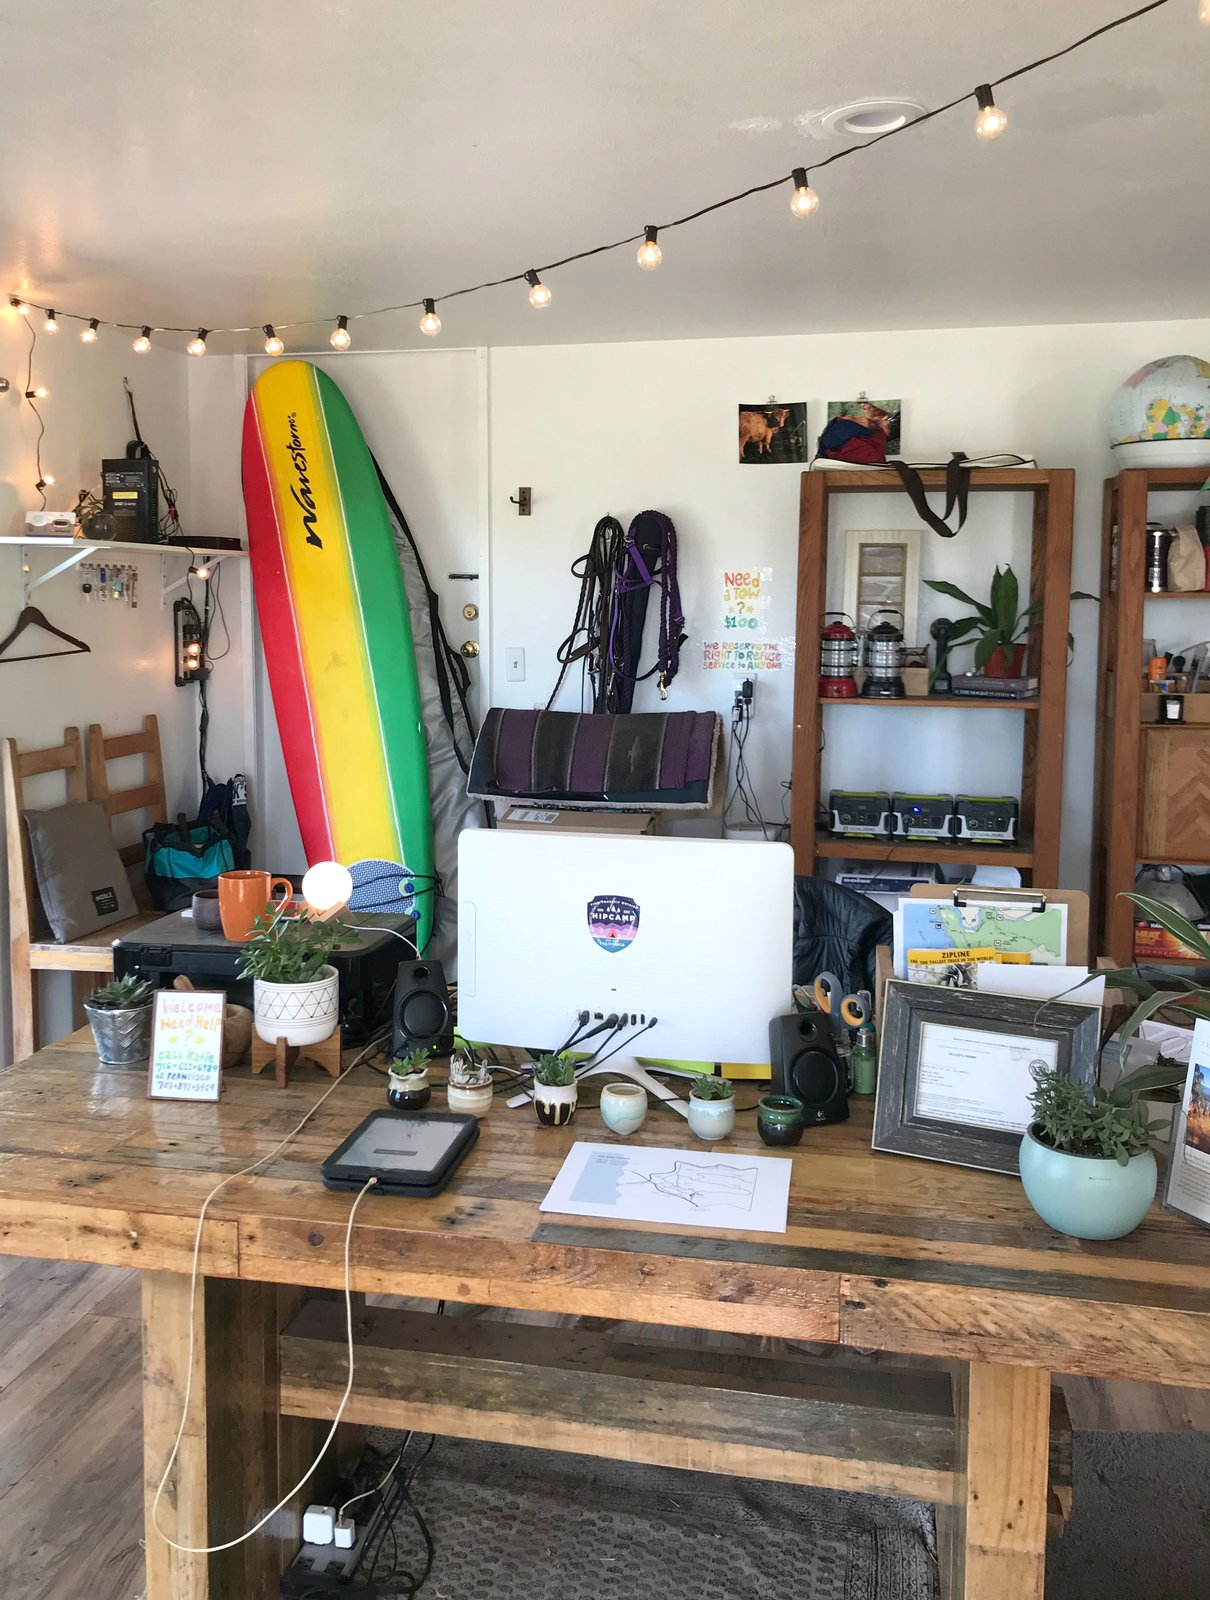 Office, Desk, and Medium Hardwood Floor The office is an eclectic mix of plants, camp gear, and rental equipment.  Photo 5 of 17 in Bodega Bay or Bust: Taking the Airstream Globetrotter to Northern California's Coastal Gem